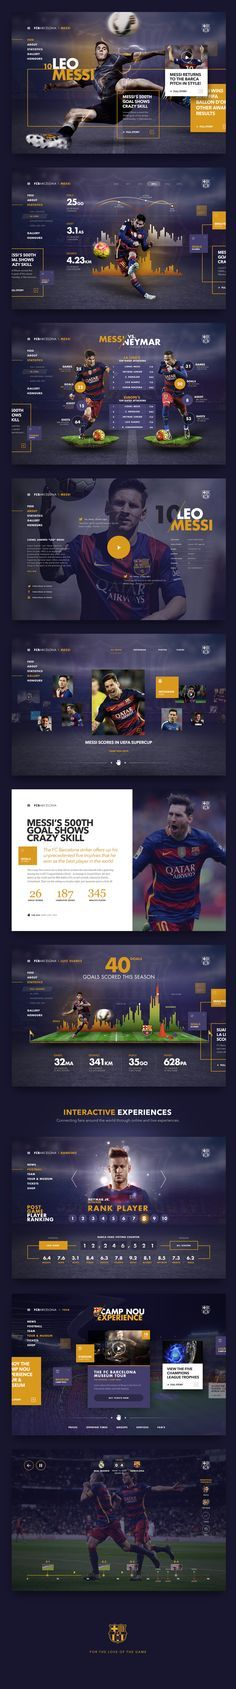 FC Barcelona design by Fred Nerby. https://www.behance.net/gallery/37276397/FC-Barcelona